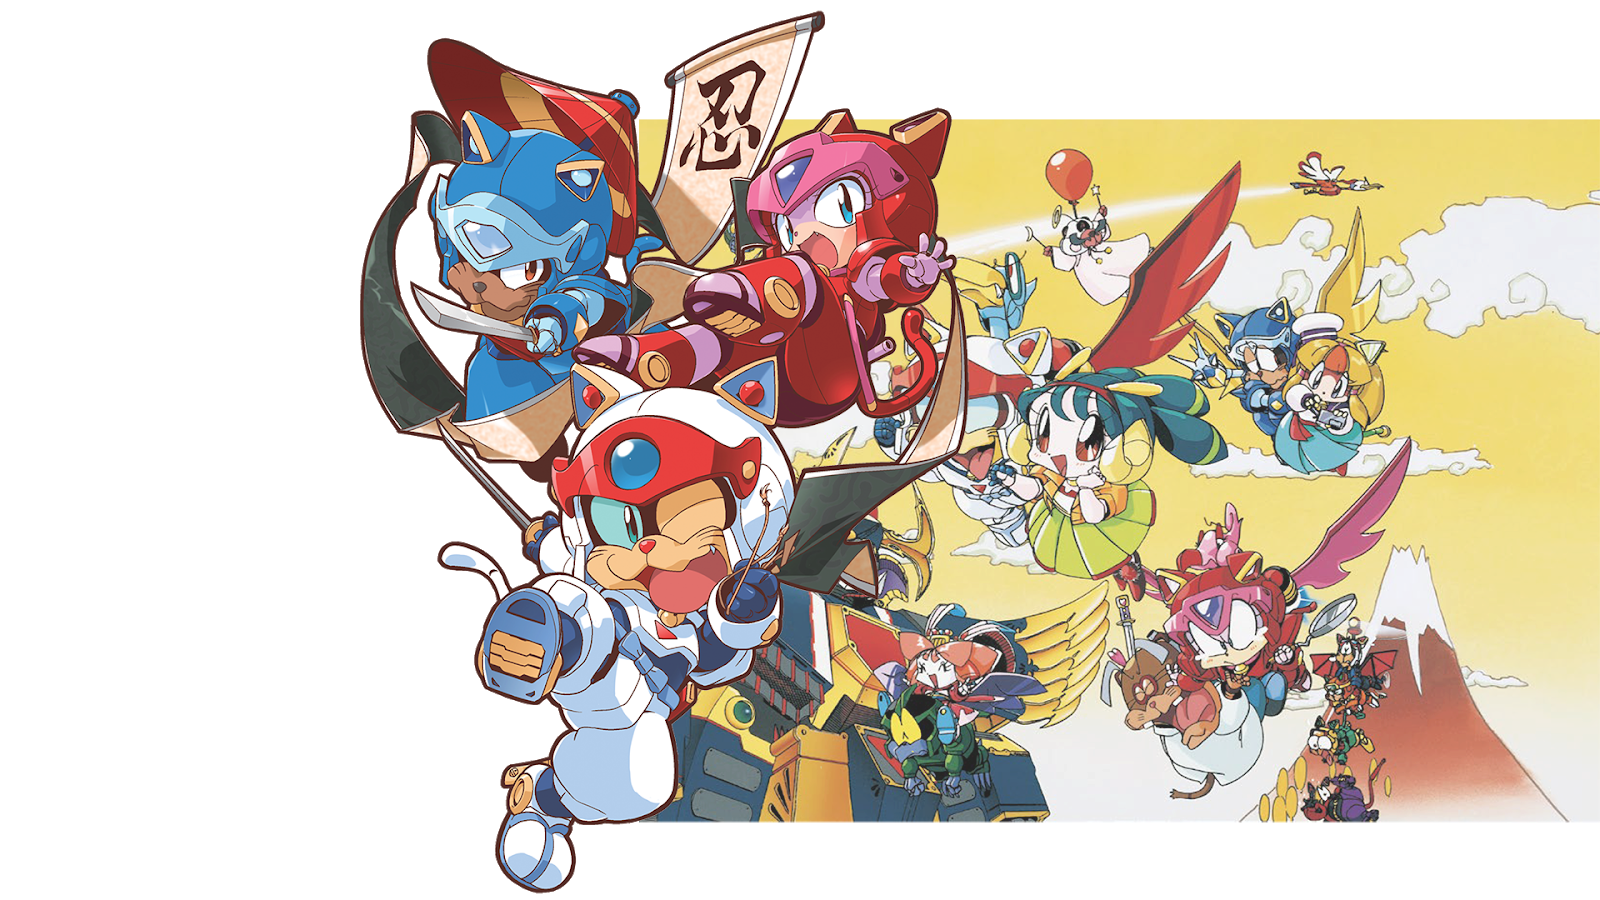 The Samurai Pizza Cats Official Fanbook Explores The Series' Japanese Roots